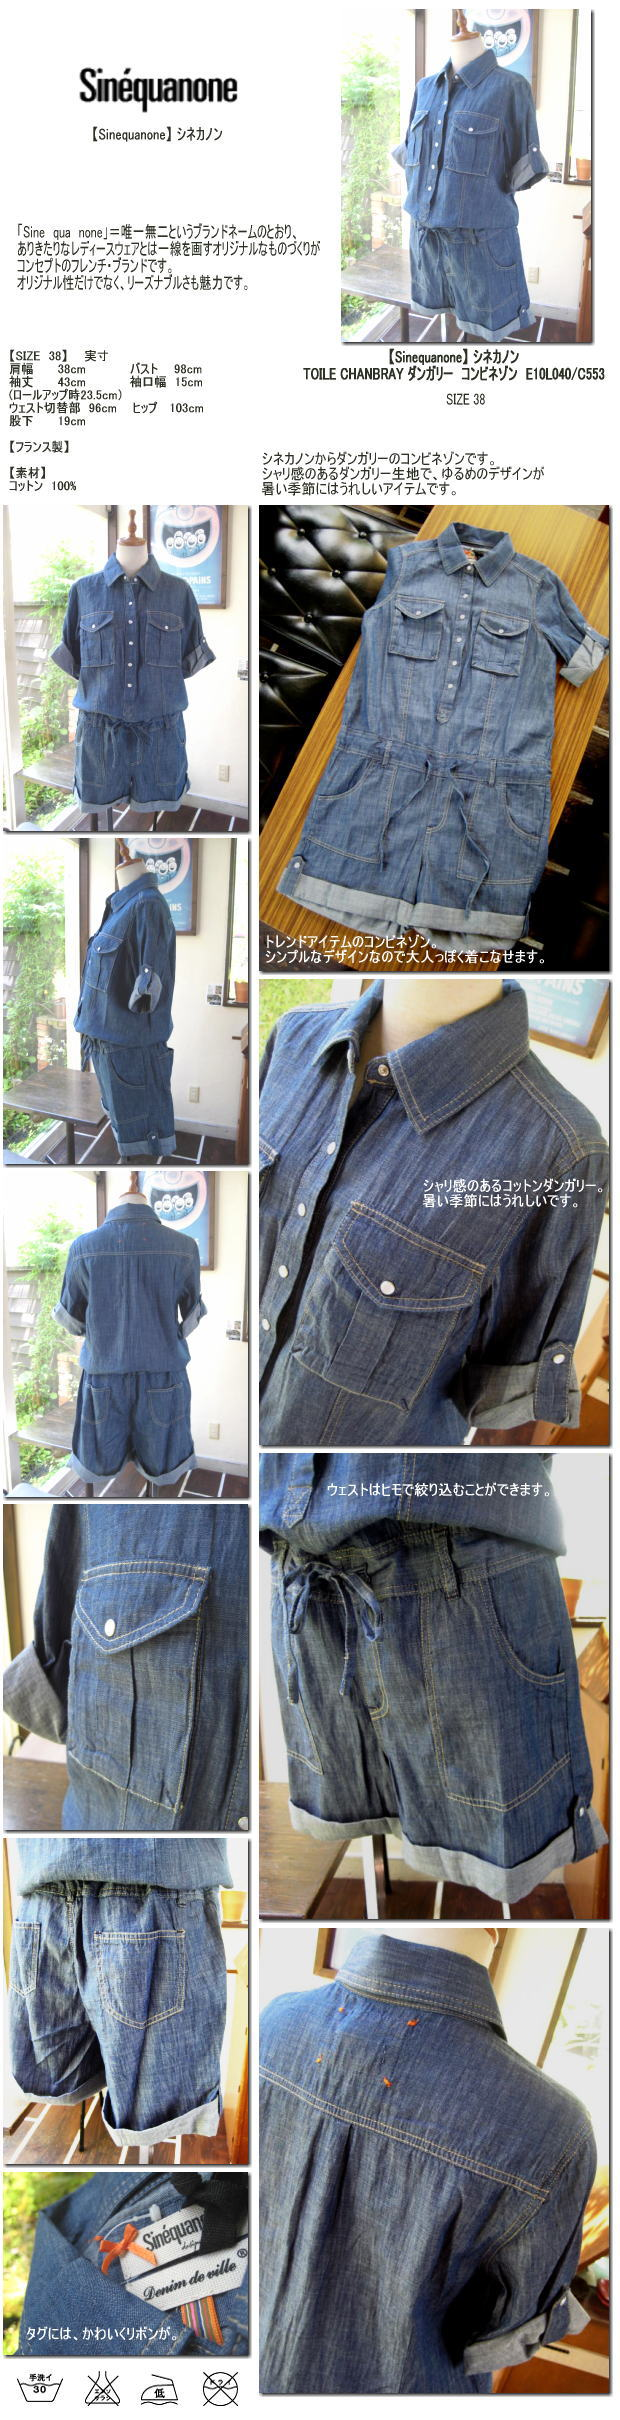 【Sinequanone】シネカノン TOILE CHAMBRAY ダンガリー コンビネゾン E10L040/C553 size38